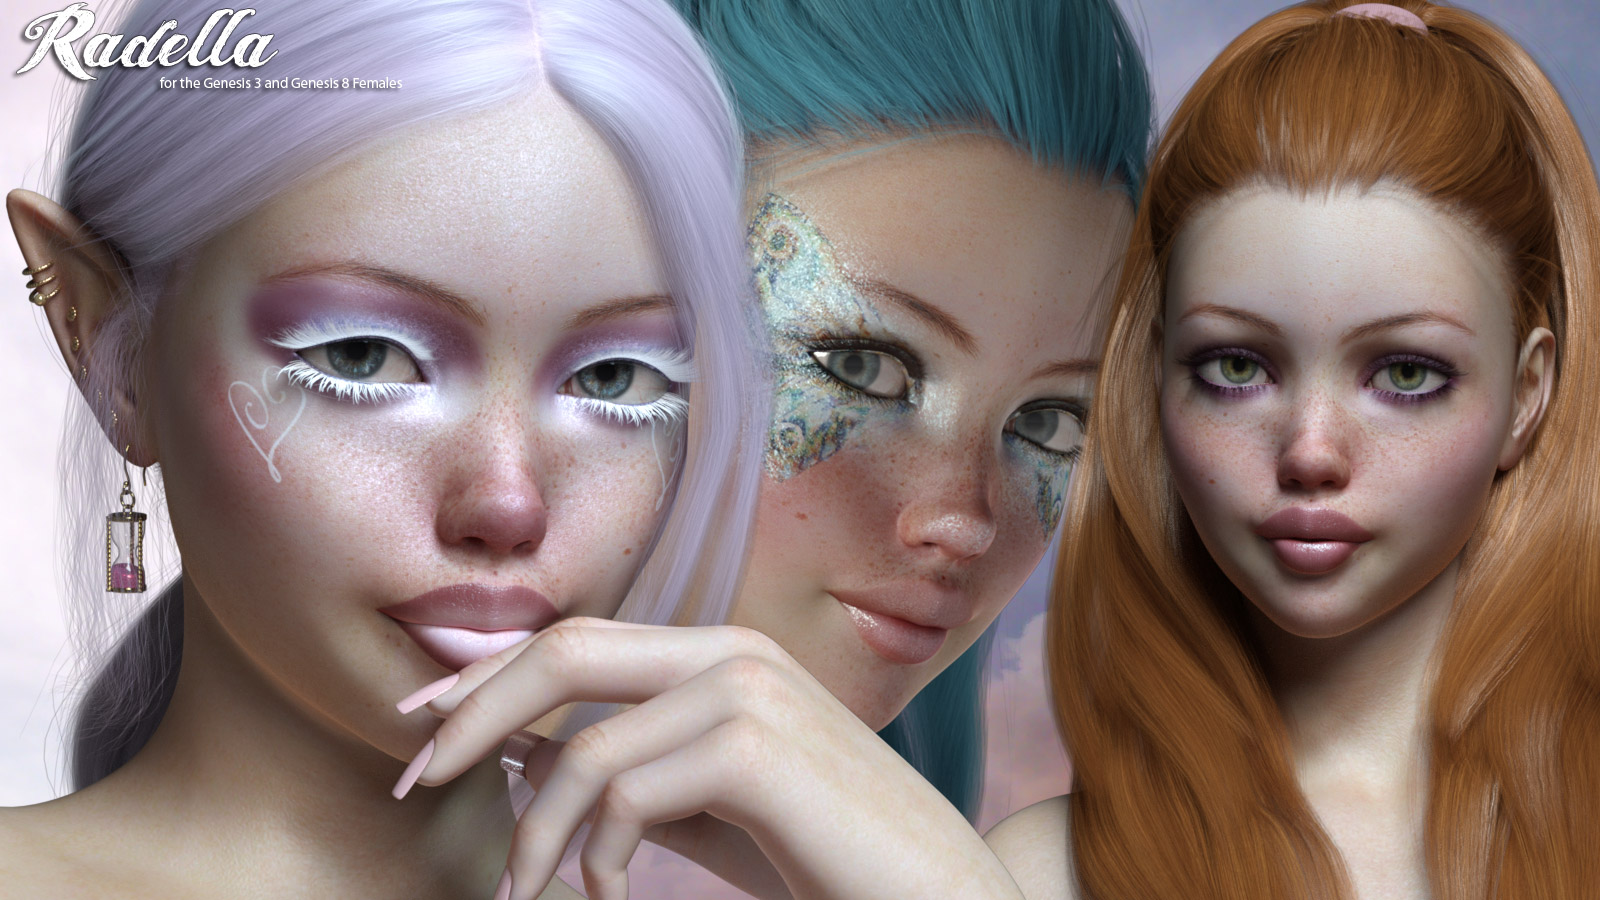 RP Radella for the Genesis 3 and Genesis 8 Females